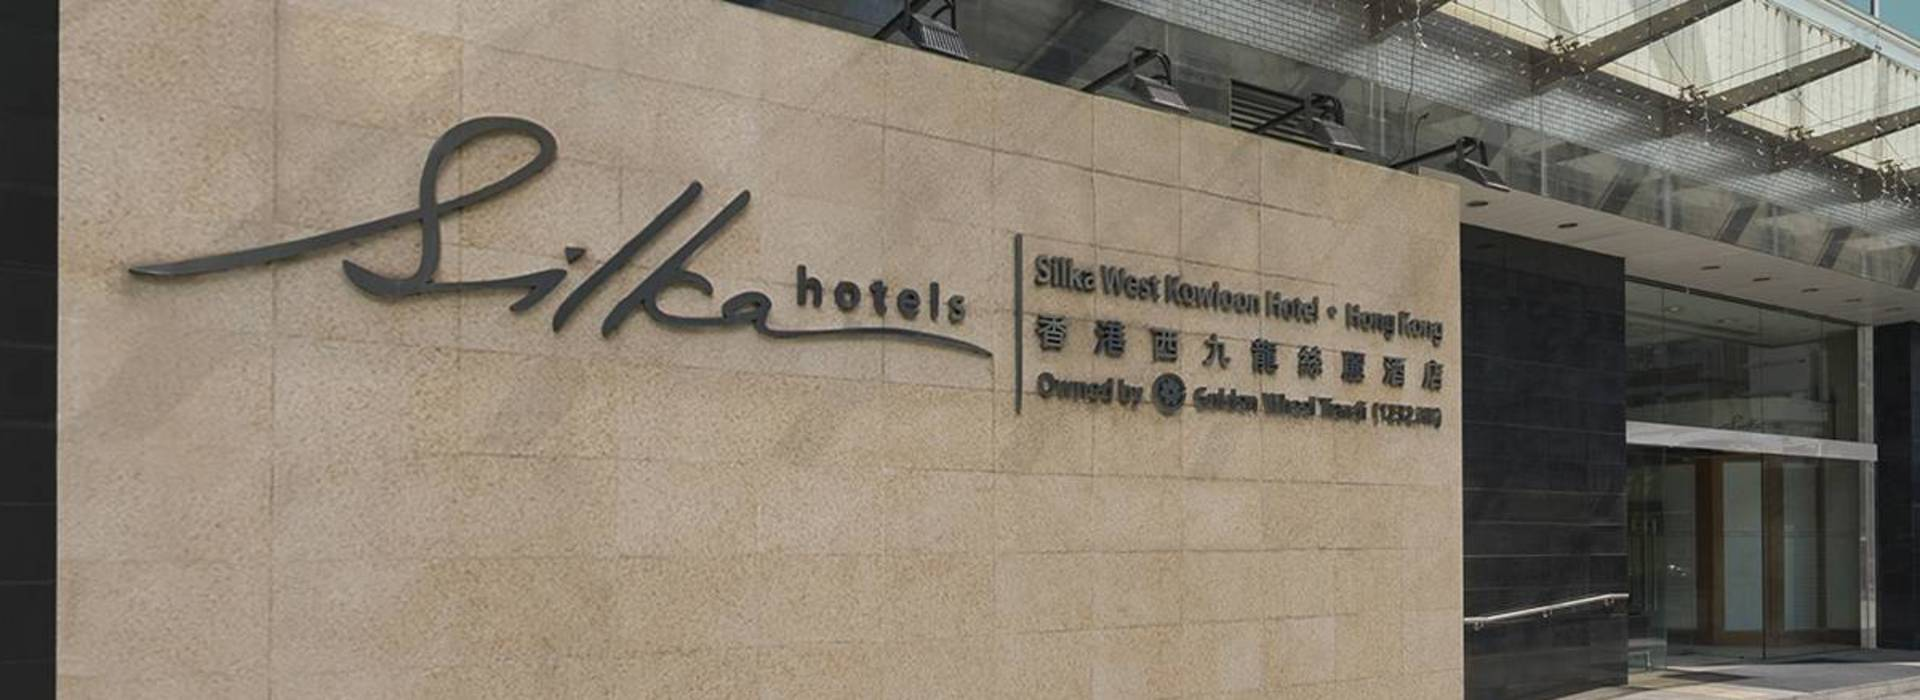 Silka West Kowloon